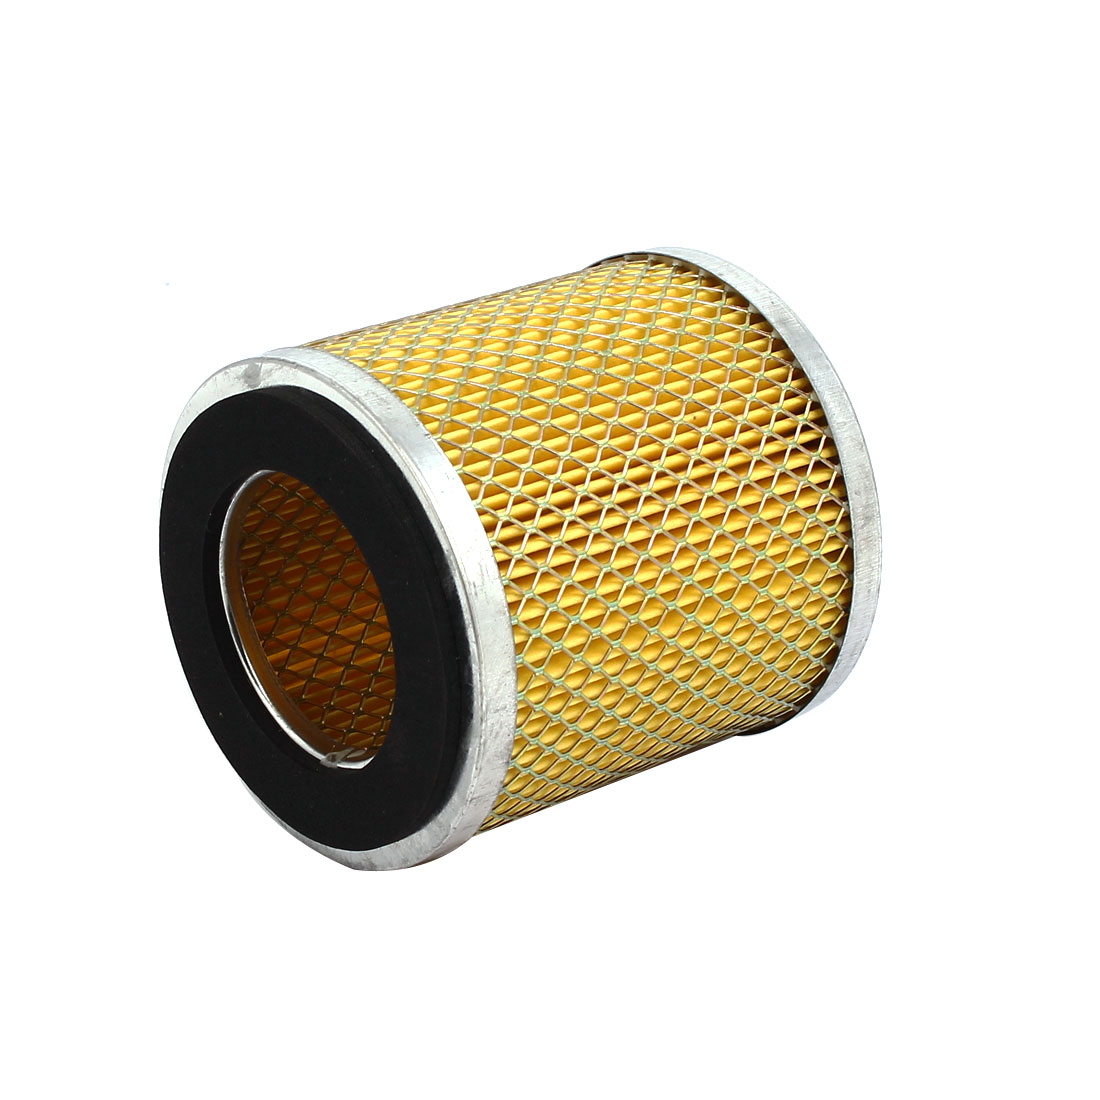 86mmx47mmx97mm Piston Type Air Compressor Element Filter